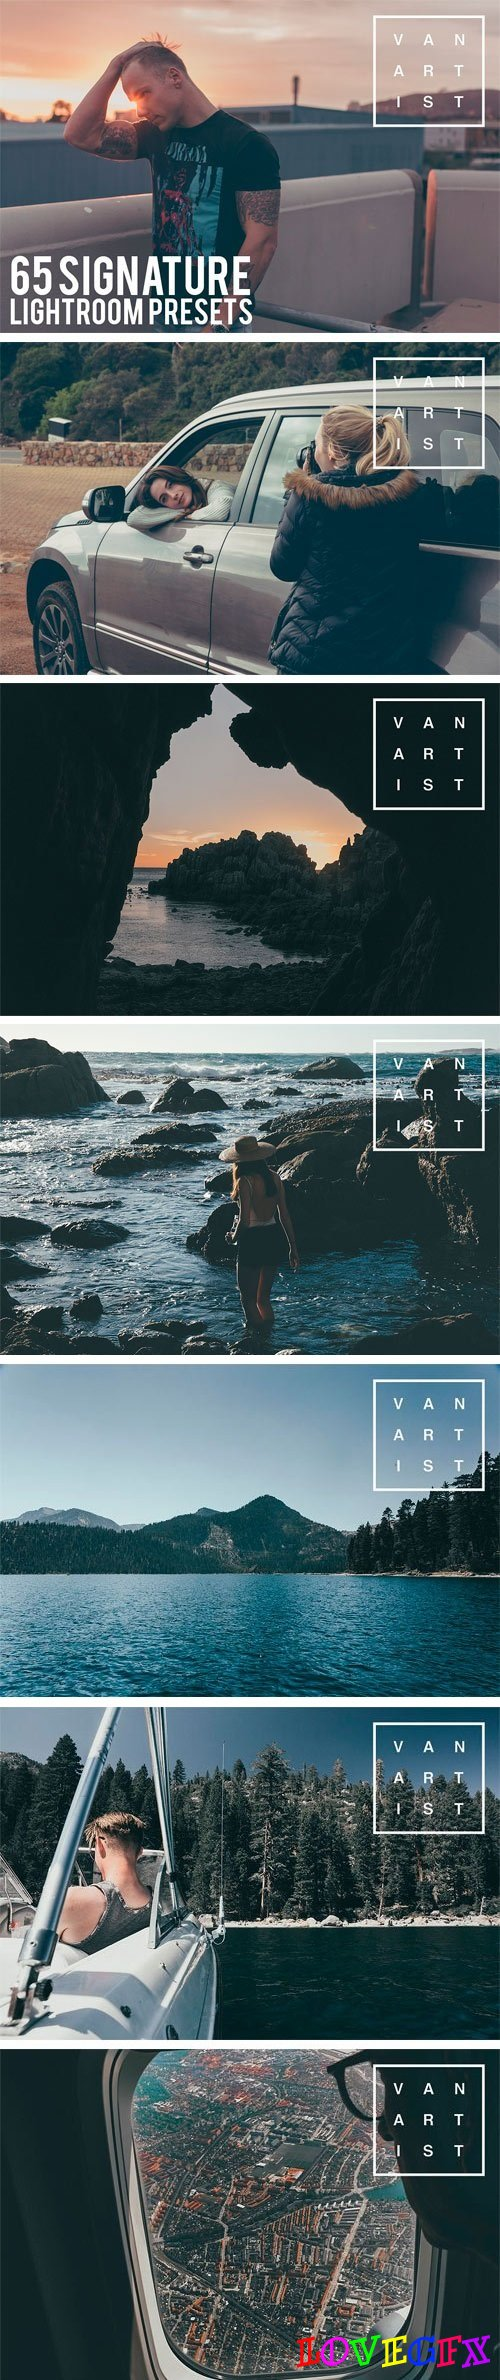 65 Signature Lightroom Presets 1922679